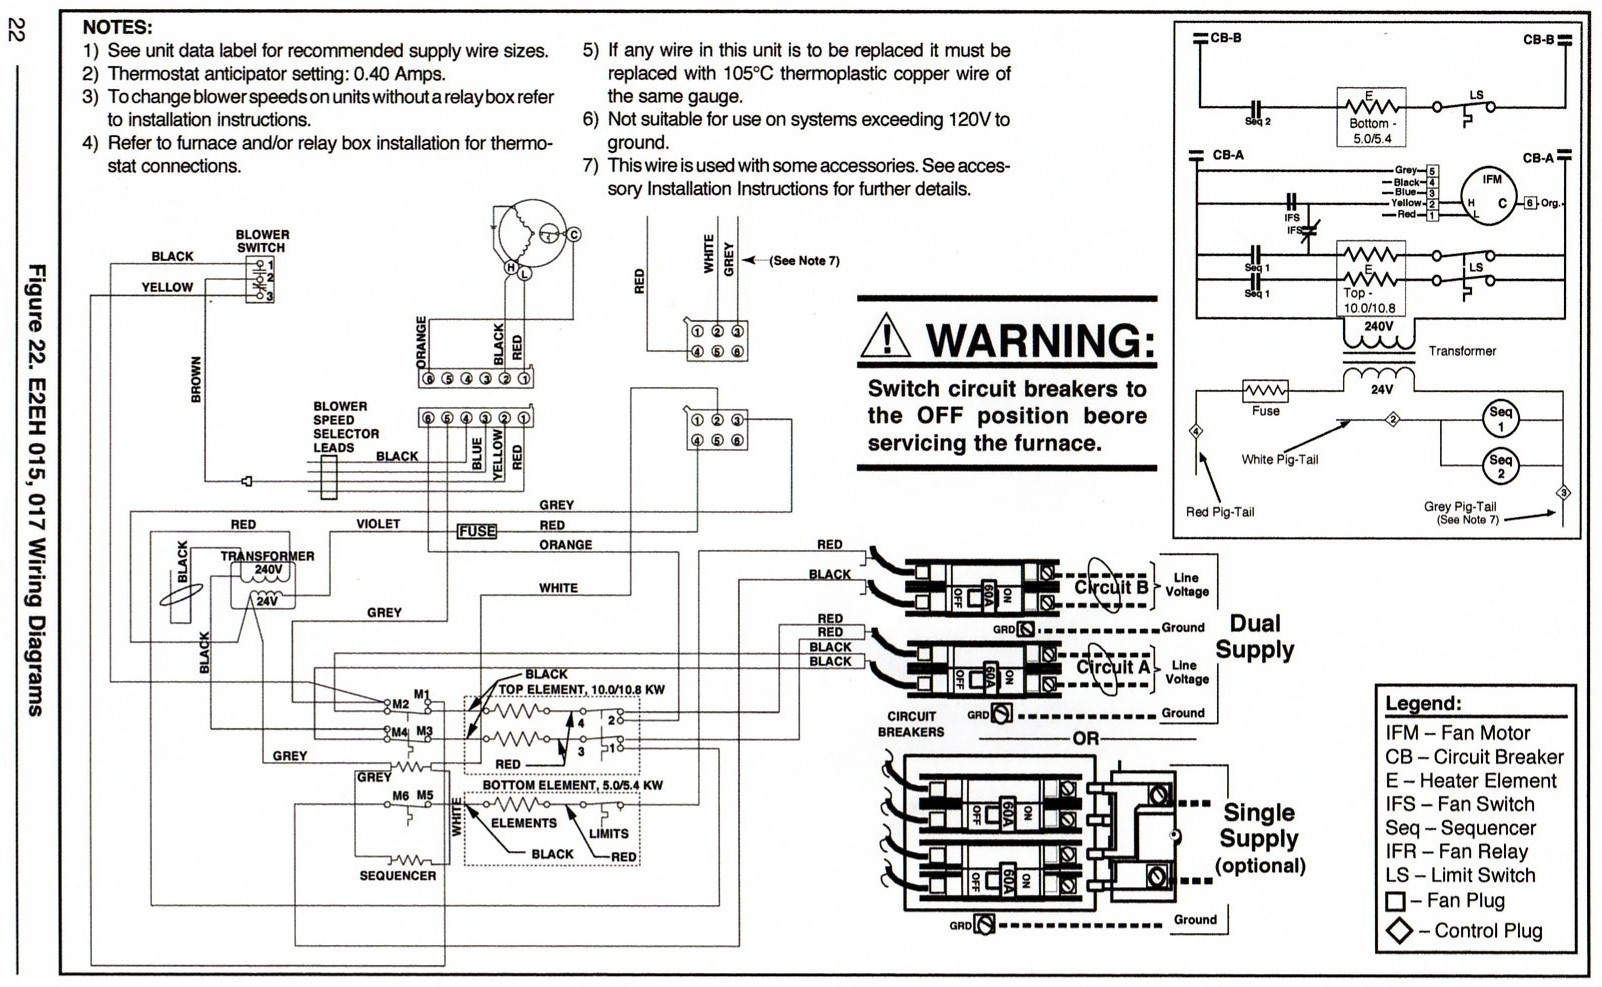 Coleman Mobile Home Gas Furnace Wiring Diagram